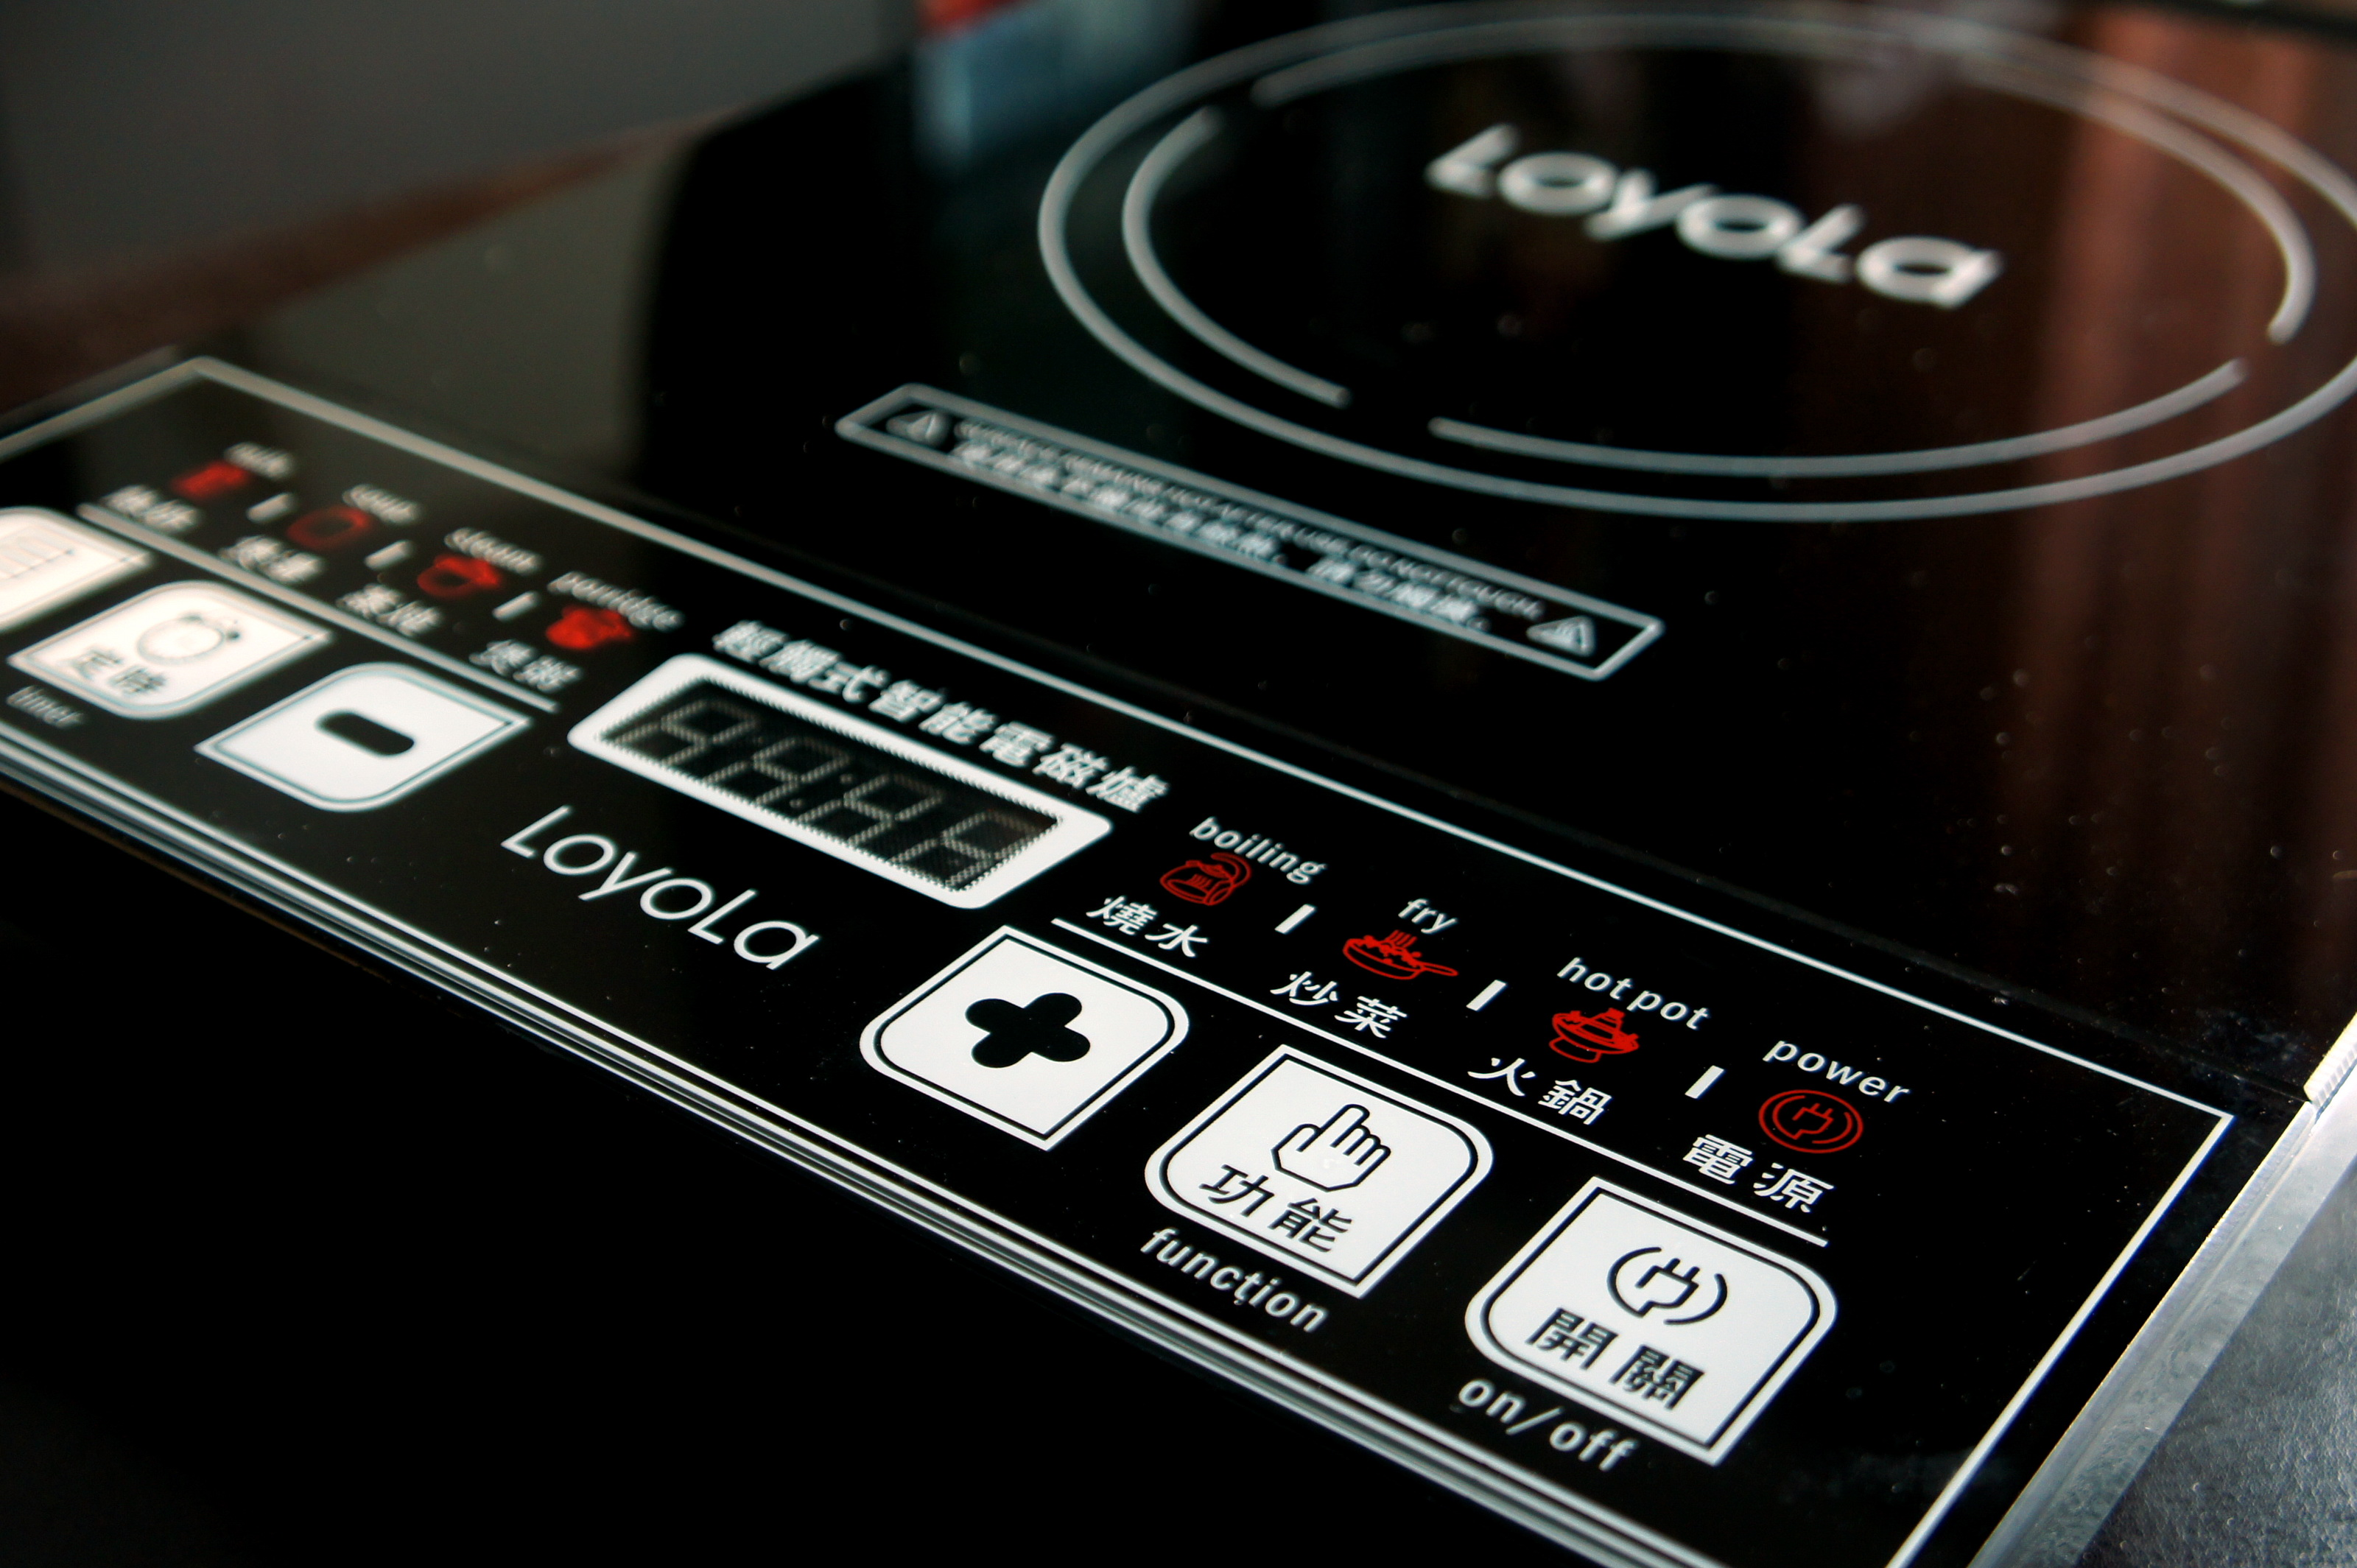 Best Induction Cooktop 2020 7 Best Portable Induction Cooktops in 2020   Think For Home